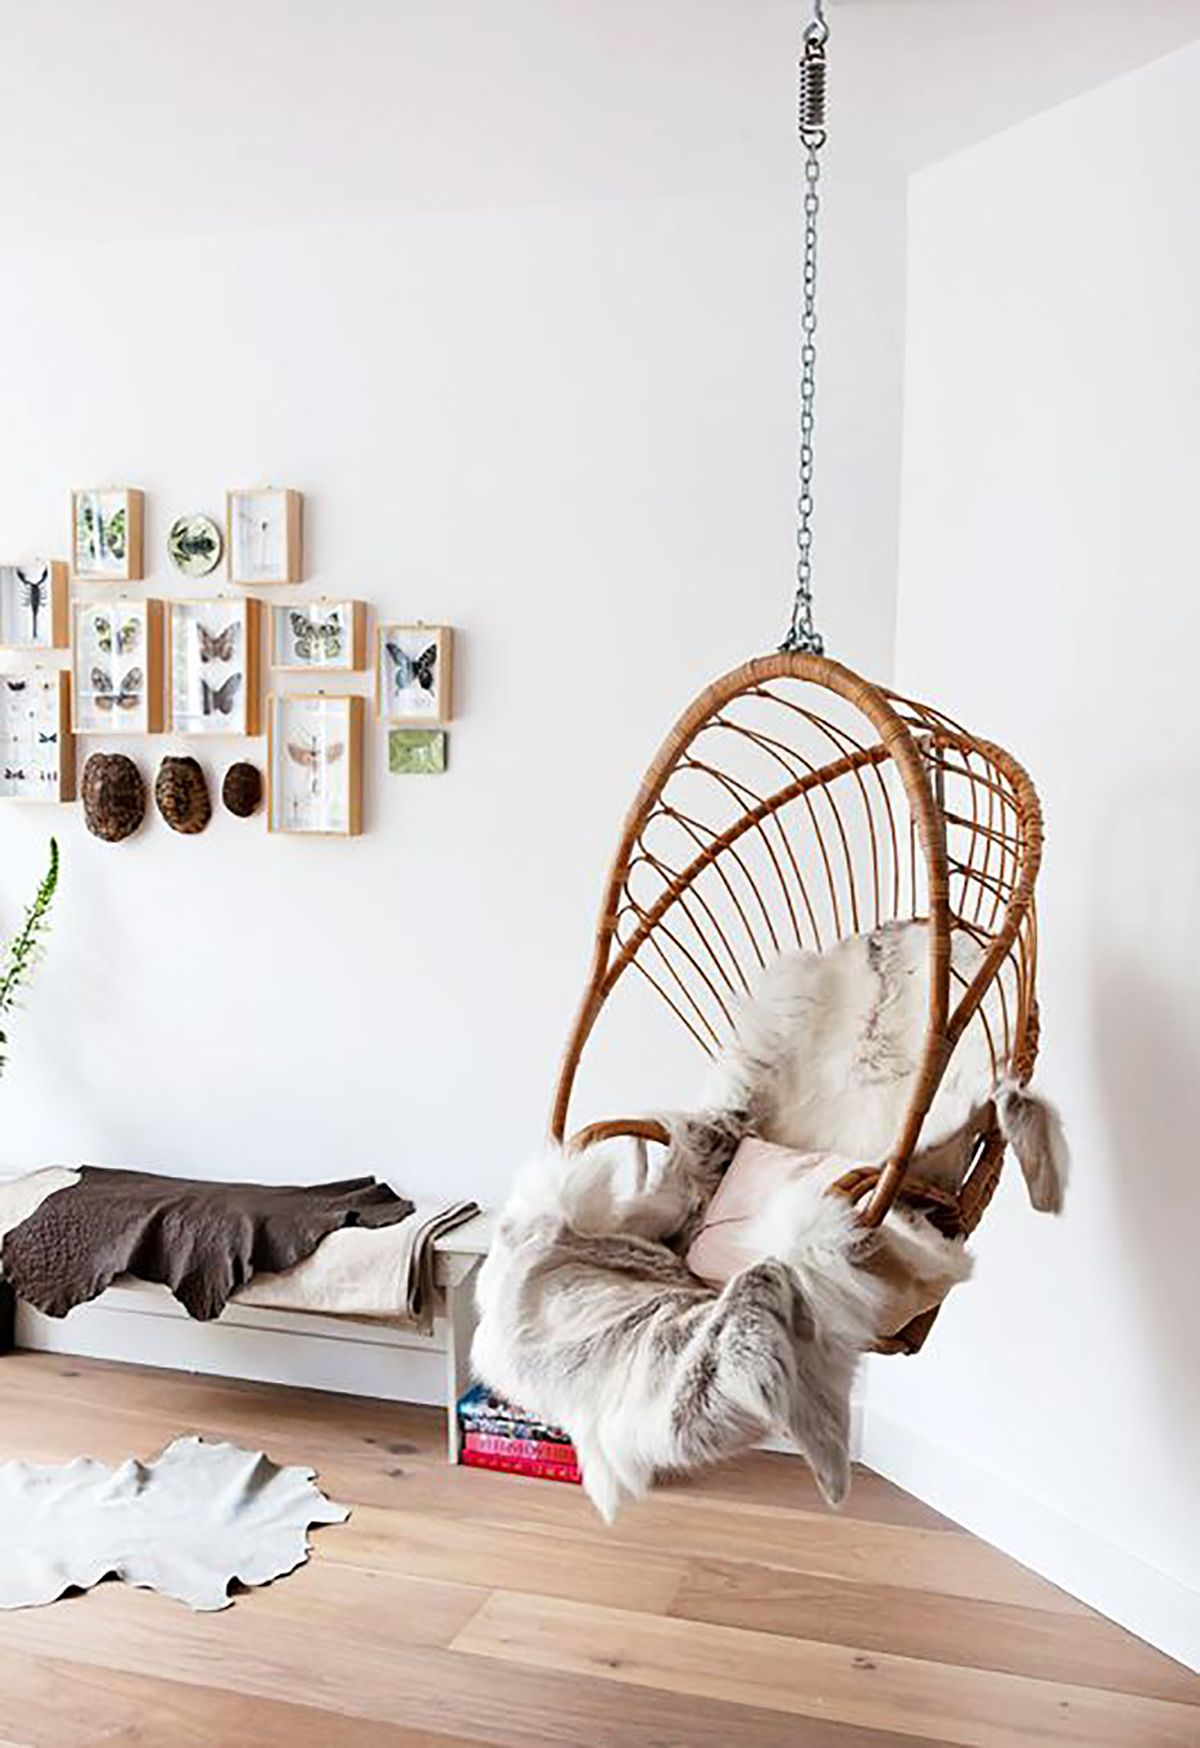 Hanging Rattan Chair for a kidu0027s room